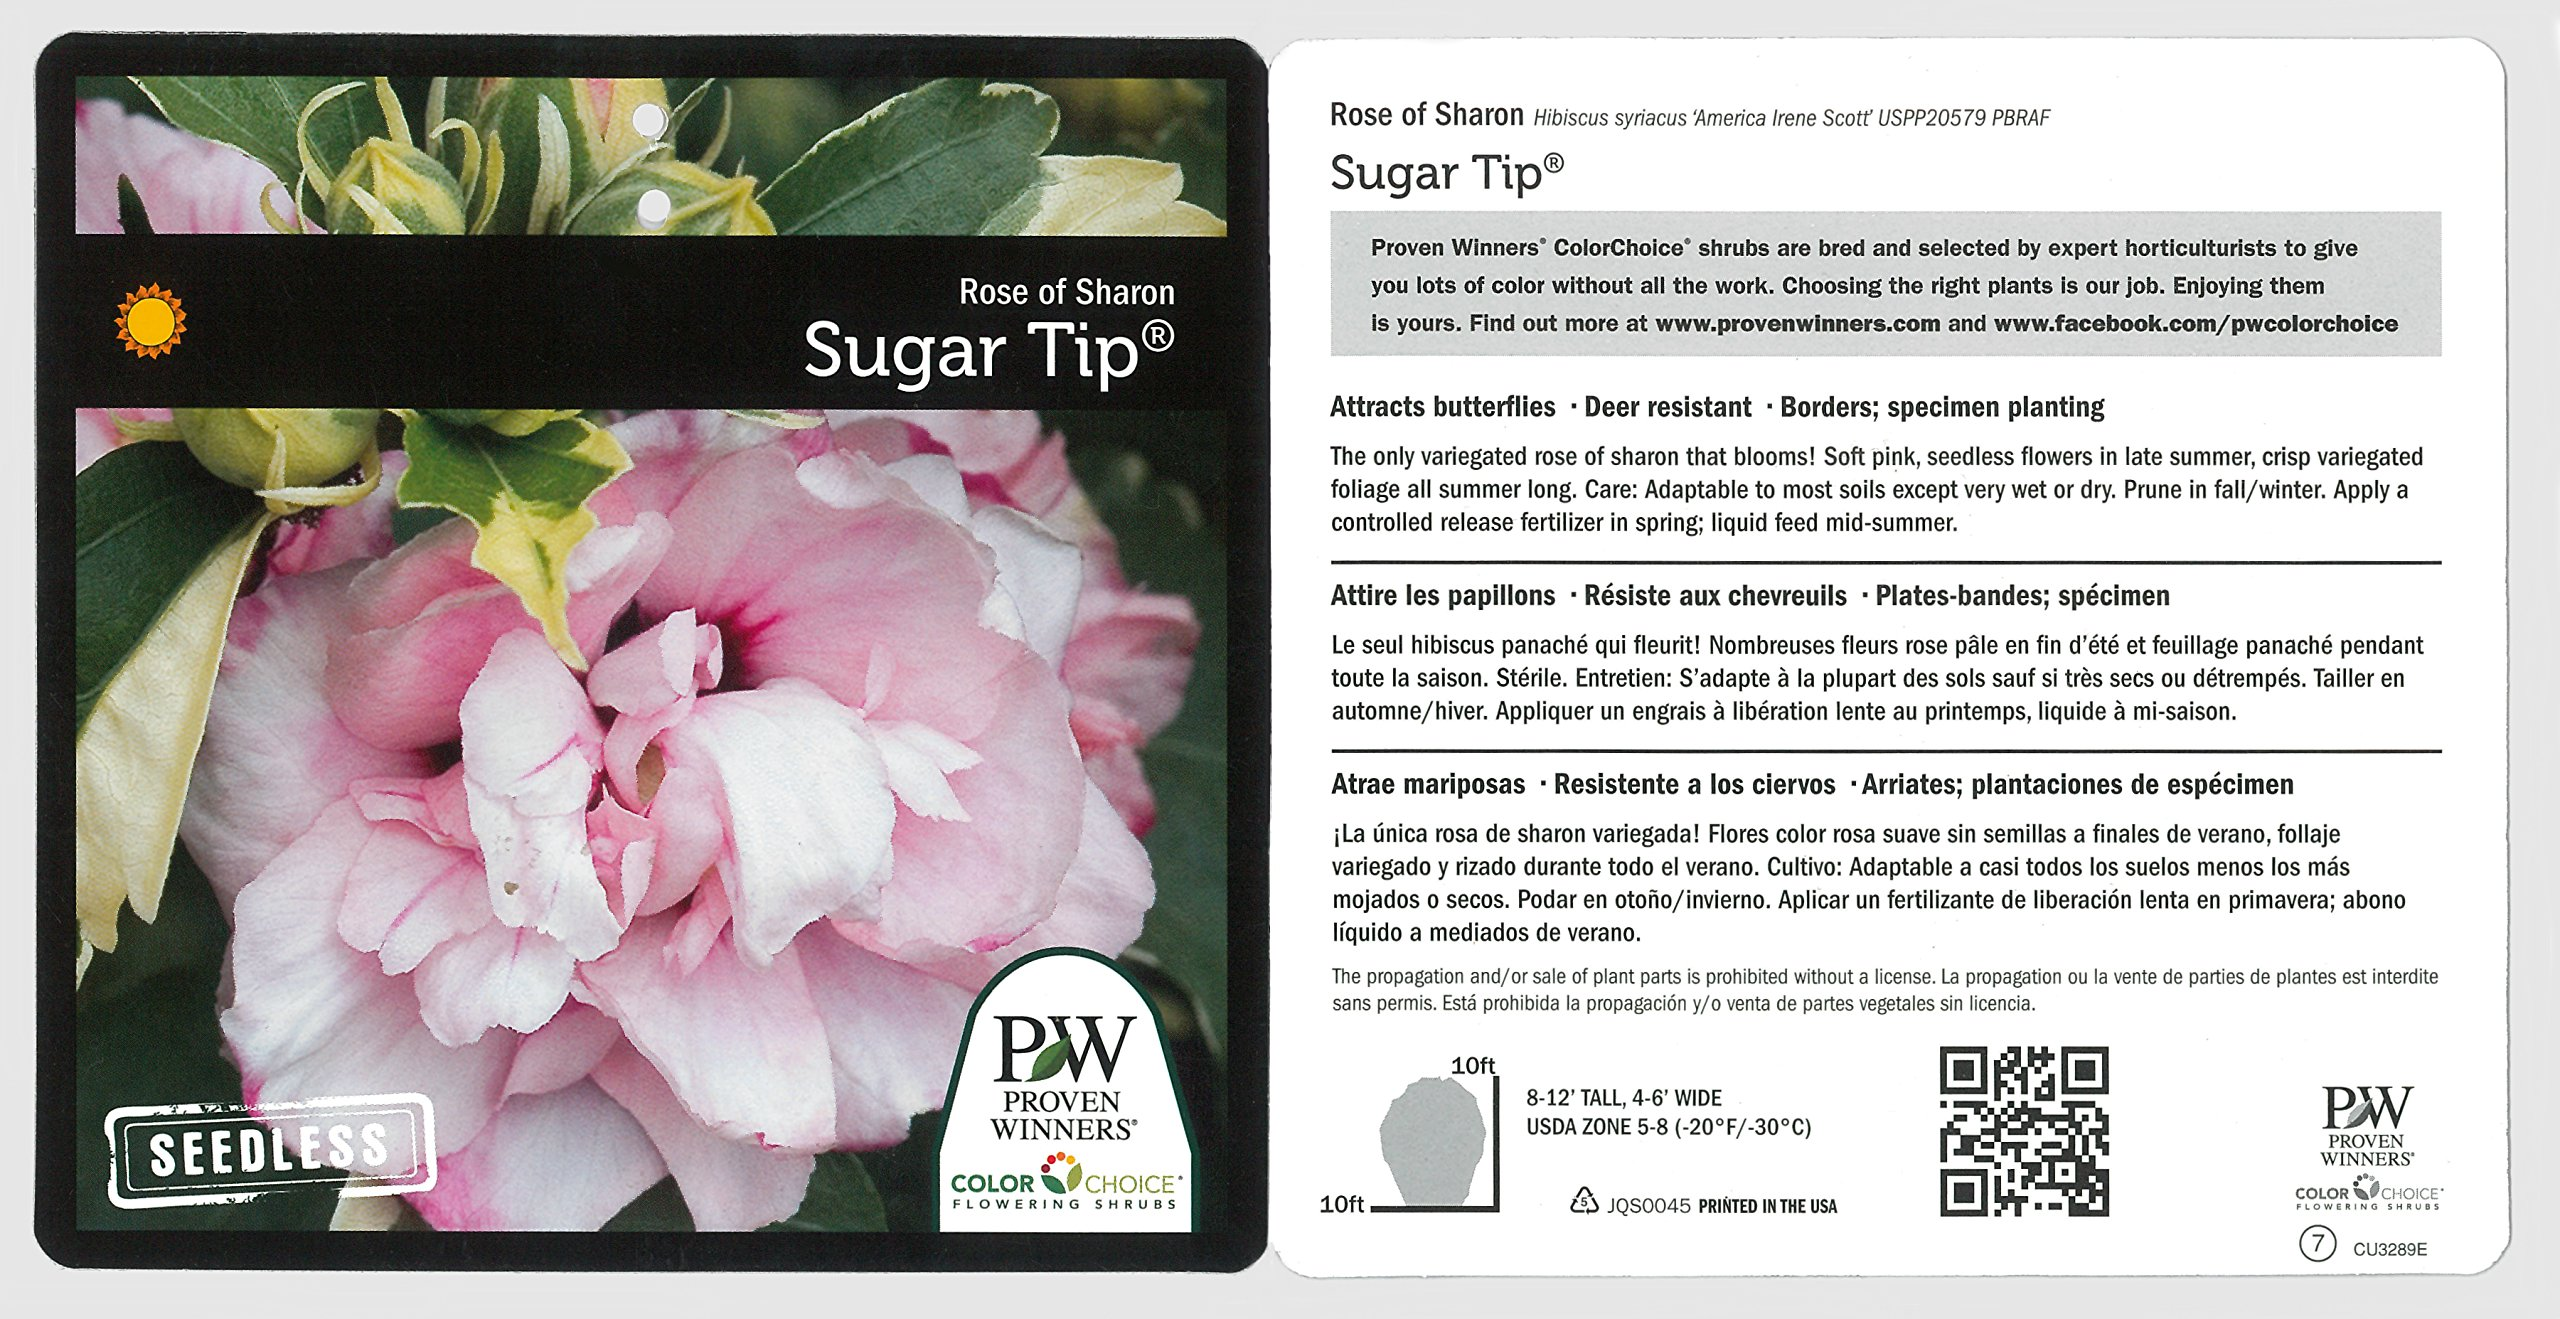 Sugar Tip Rose of Sharon (Hibiscus) Live Shrub, Light Pink Flowers and Variegated Foliage, 1 Gallon by Proven Winners (Image #3)